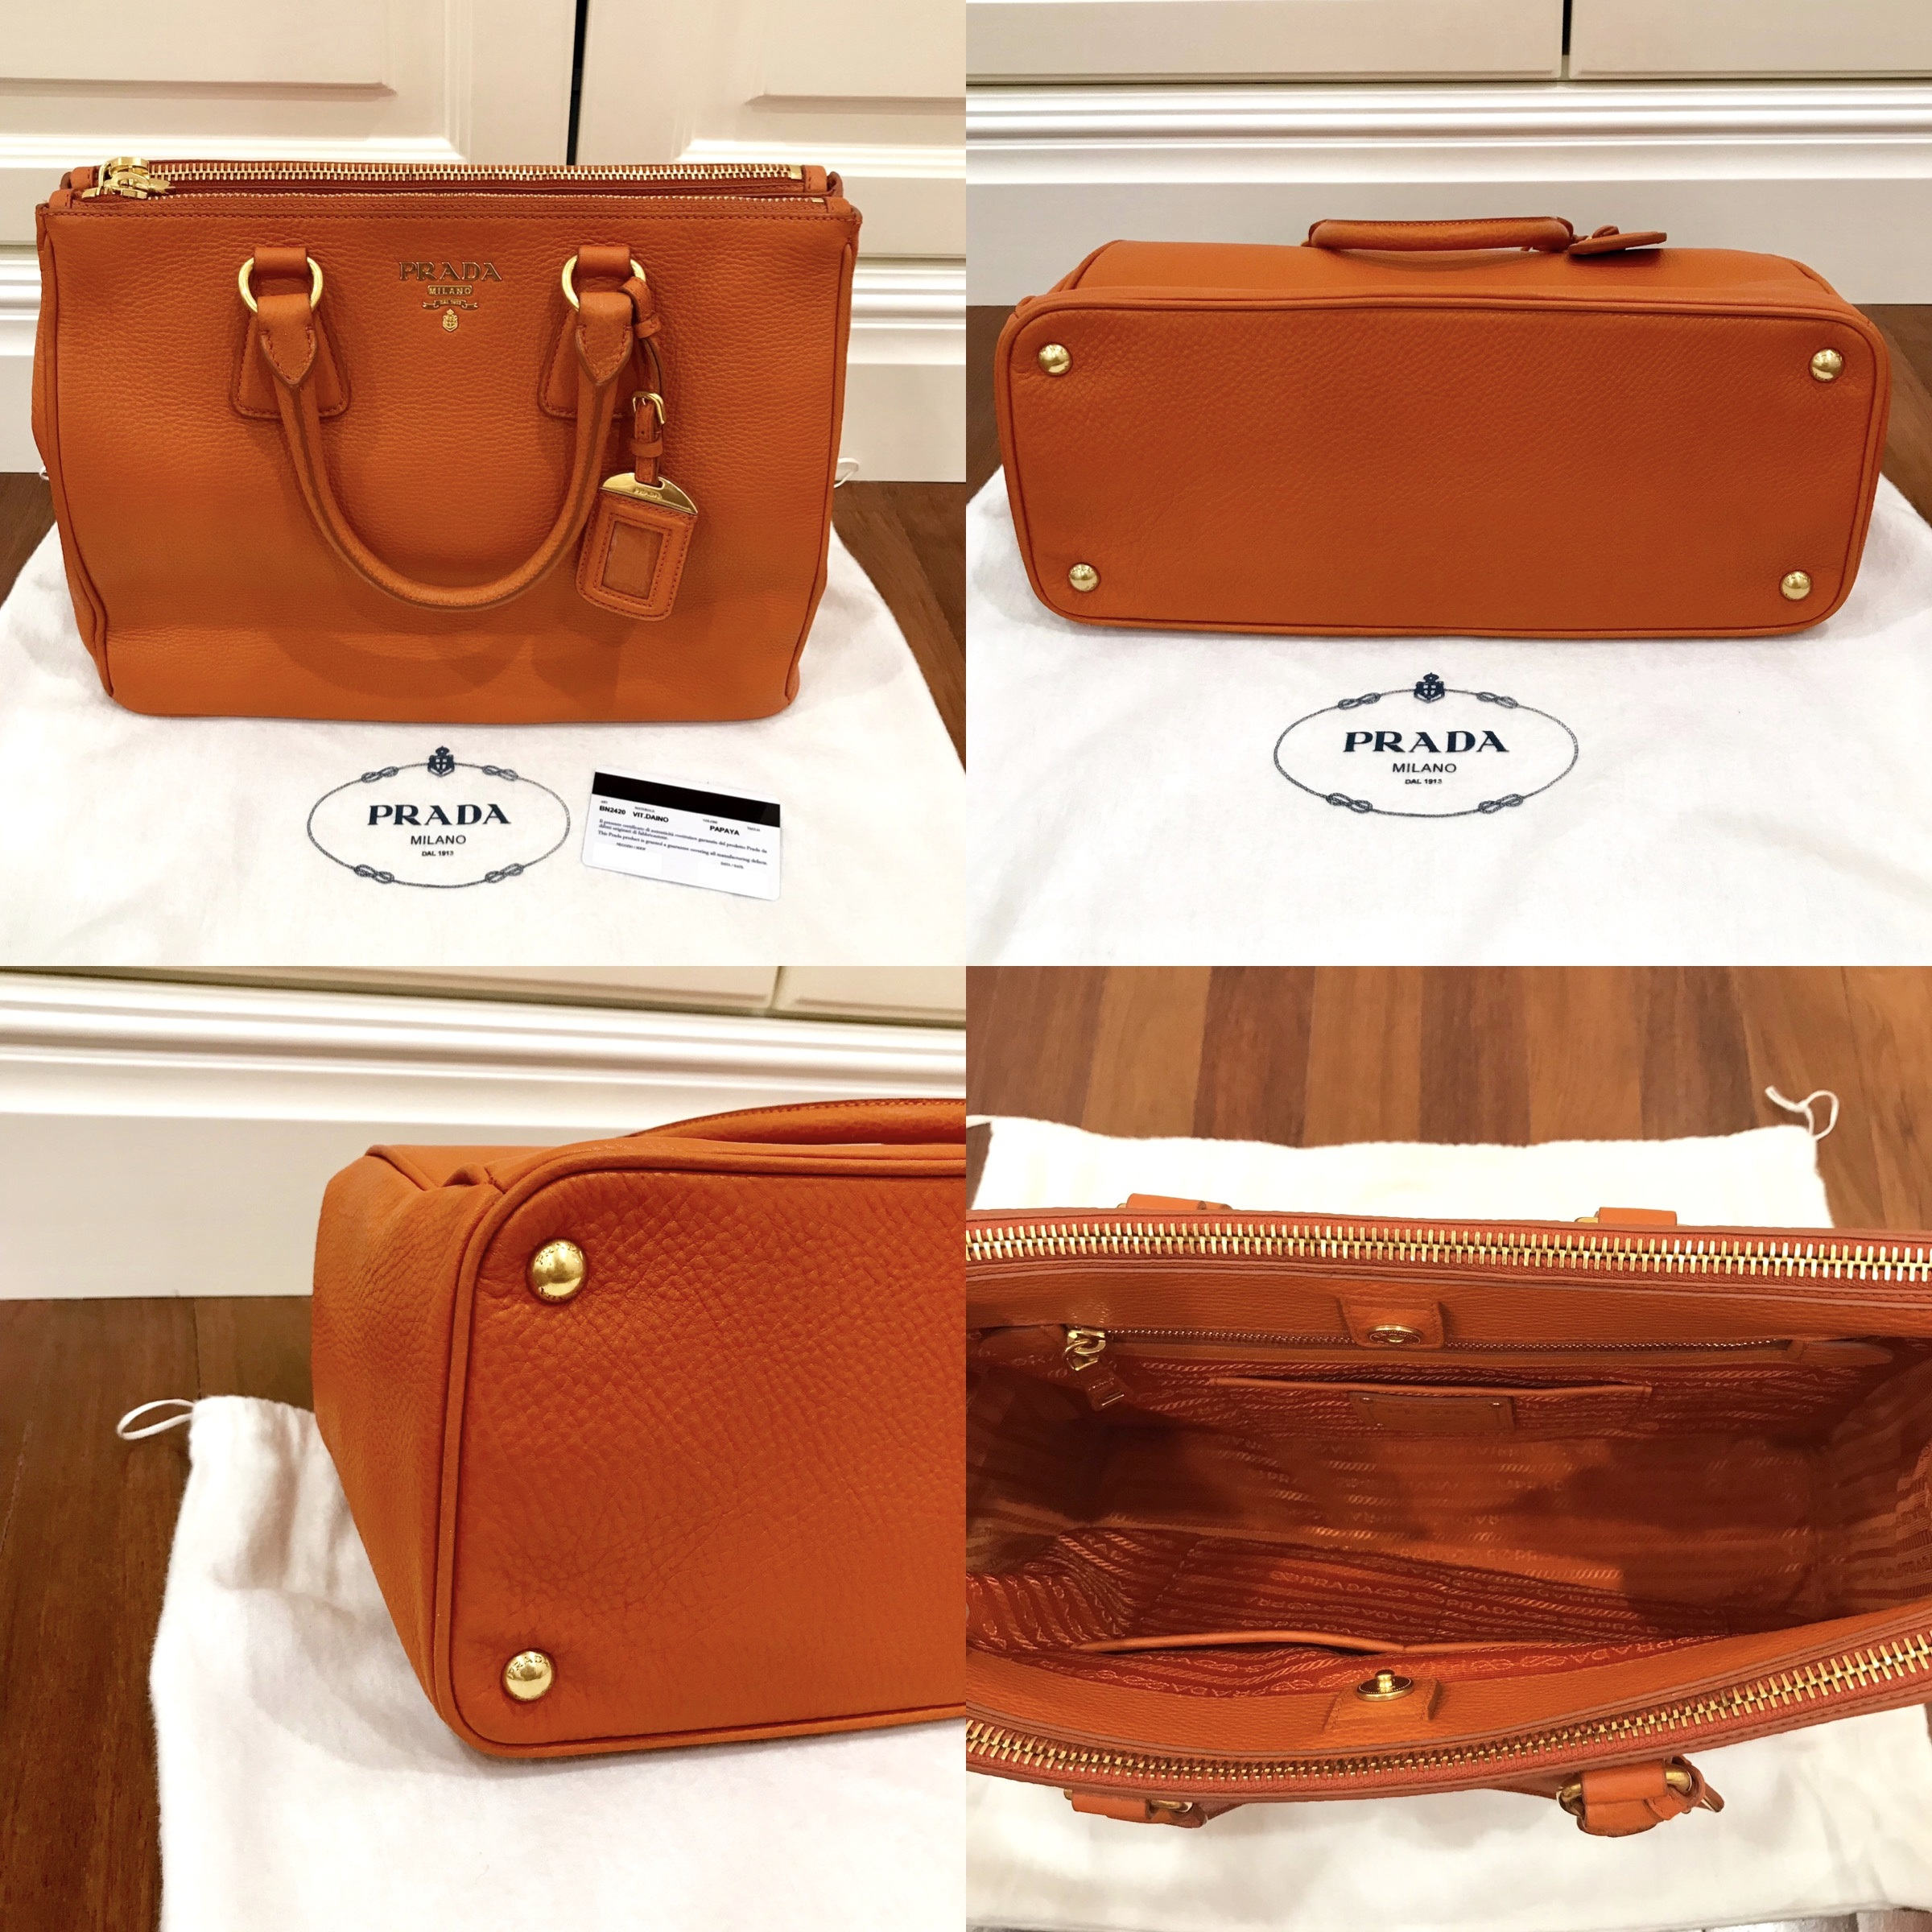 ae11d876911cbe Prada Saffiano Lux Tote Measurements : 36cm length x 15cm width x 25cm  height Condition : 10/10, new Color/Material : Orange/Calf leather with  gold hardware ...